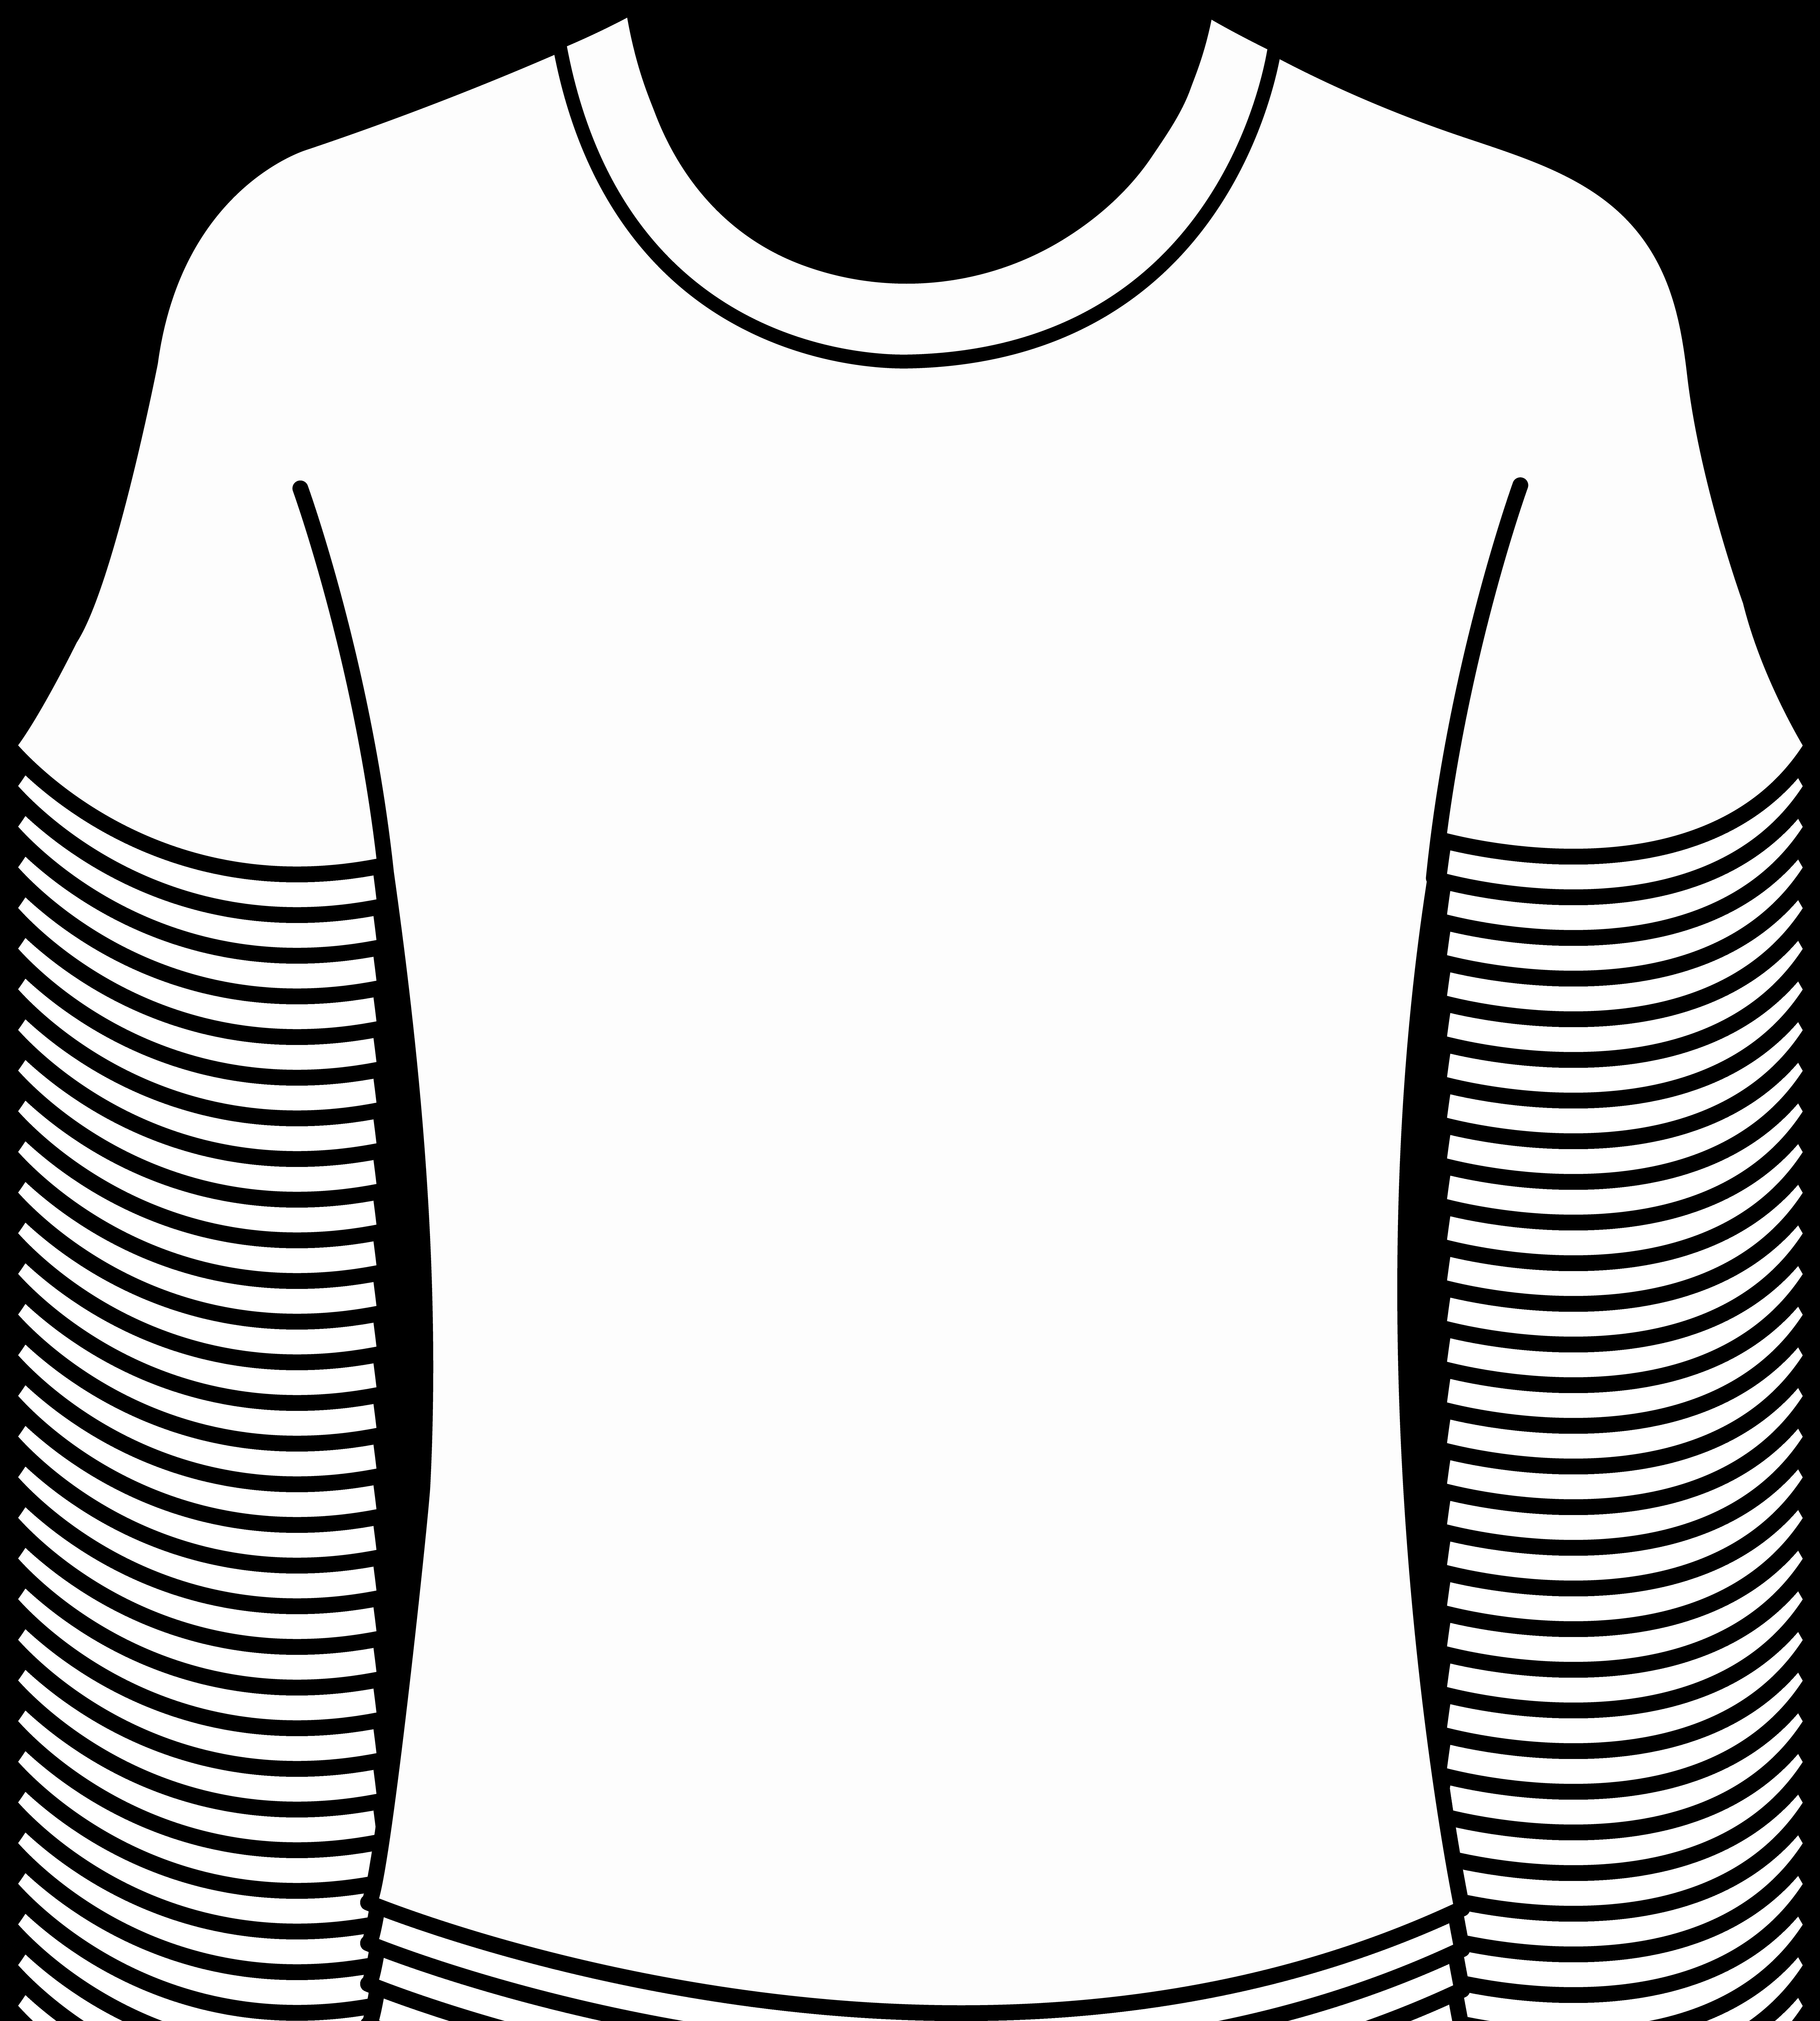 T-shirt Drawing Unique T Shirt Shirt Outline Clip Art Clipart Clipart Clipartix